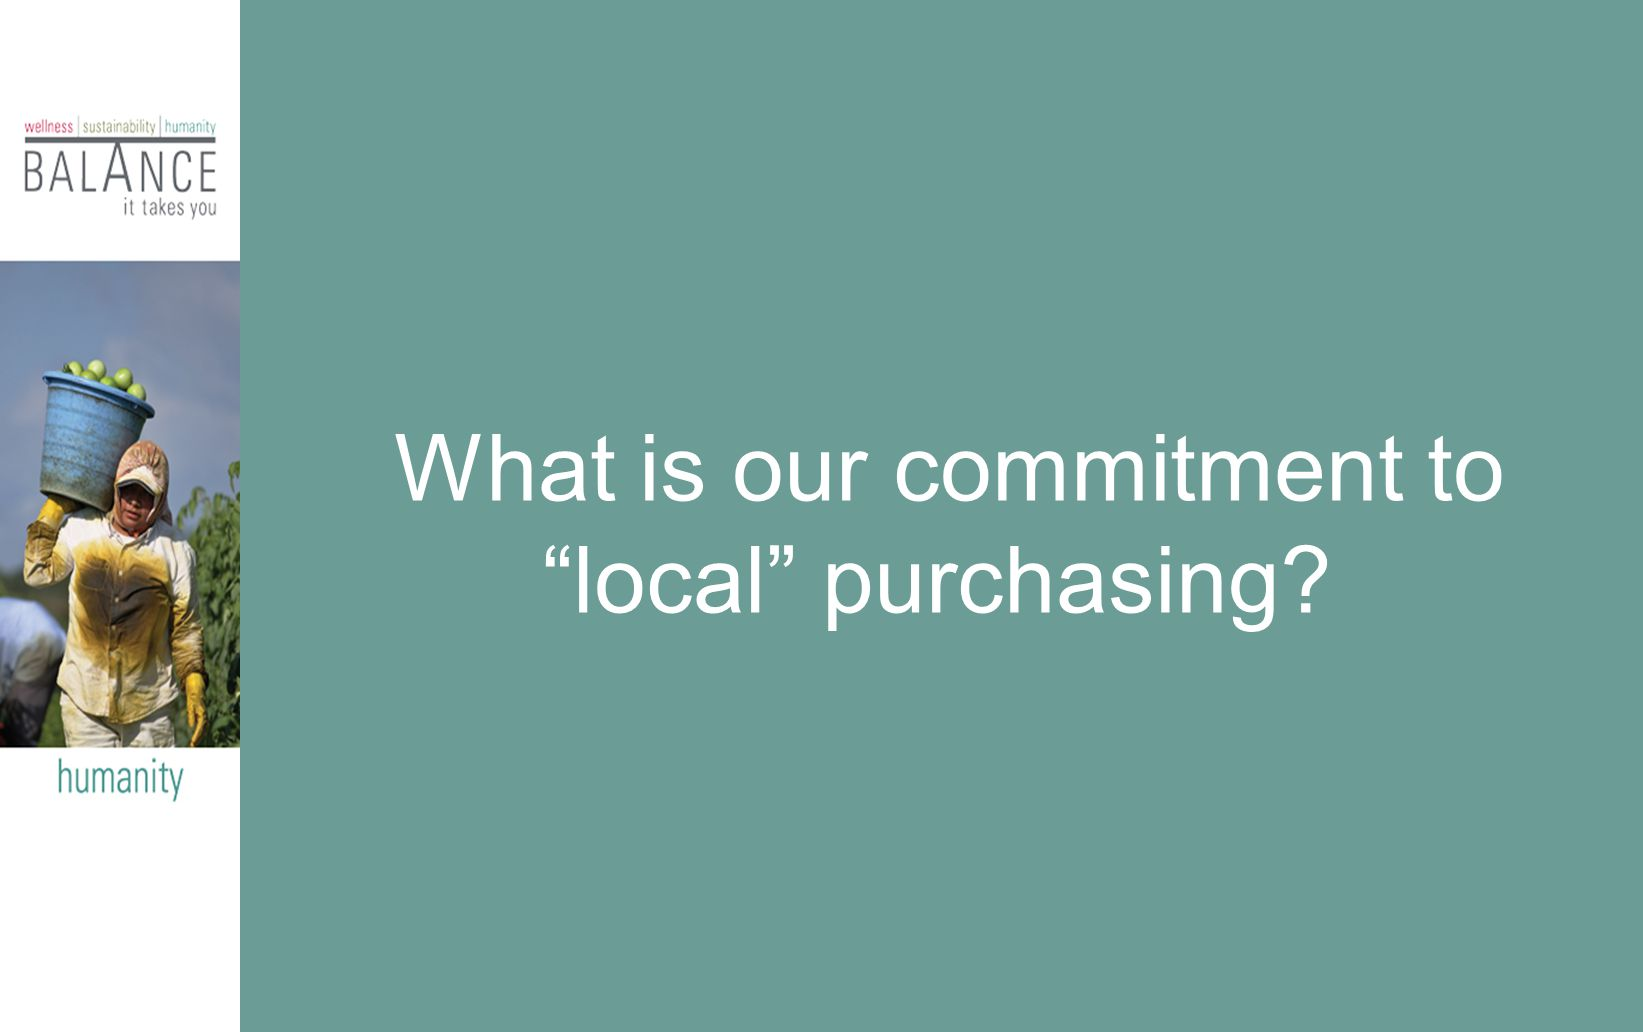 What is our commitment to local purchasing